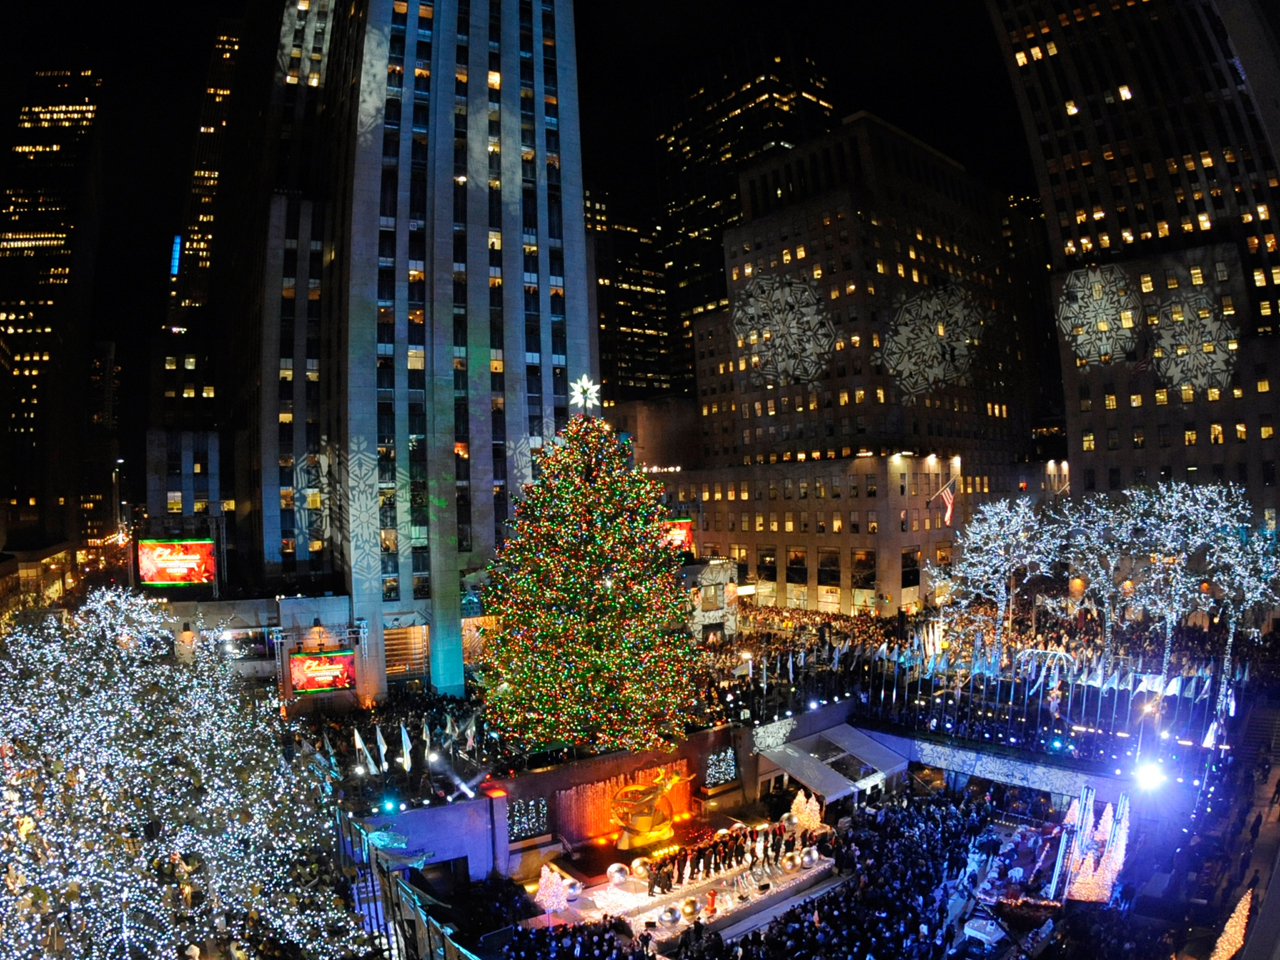 Bennet Natale Rockefeller Center Christmas Tree 2011 Photo 1